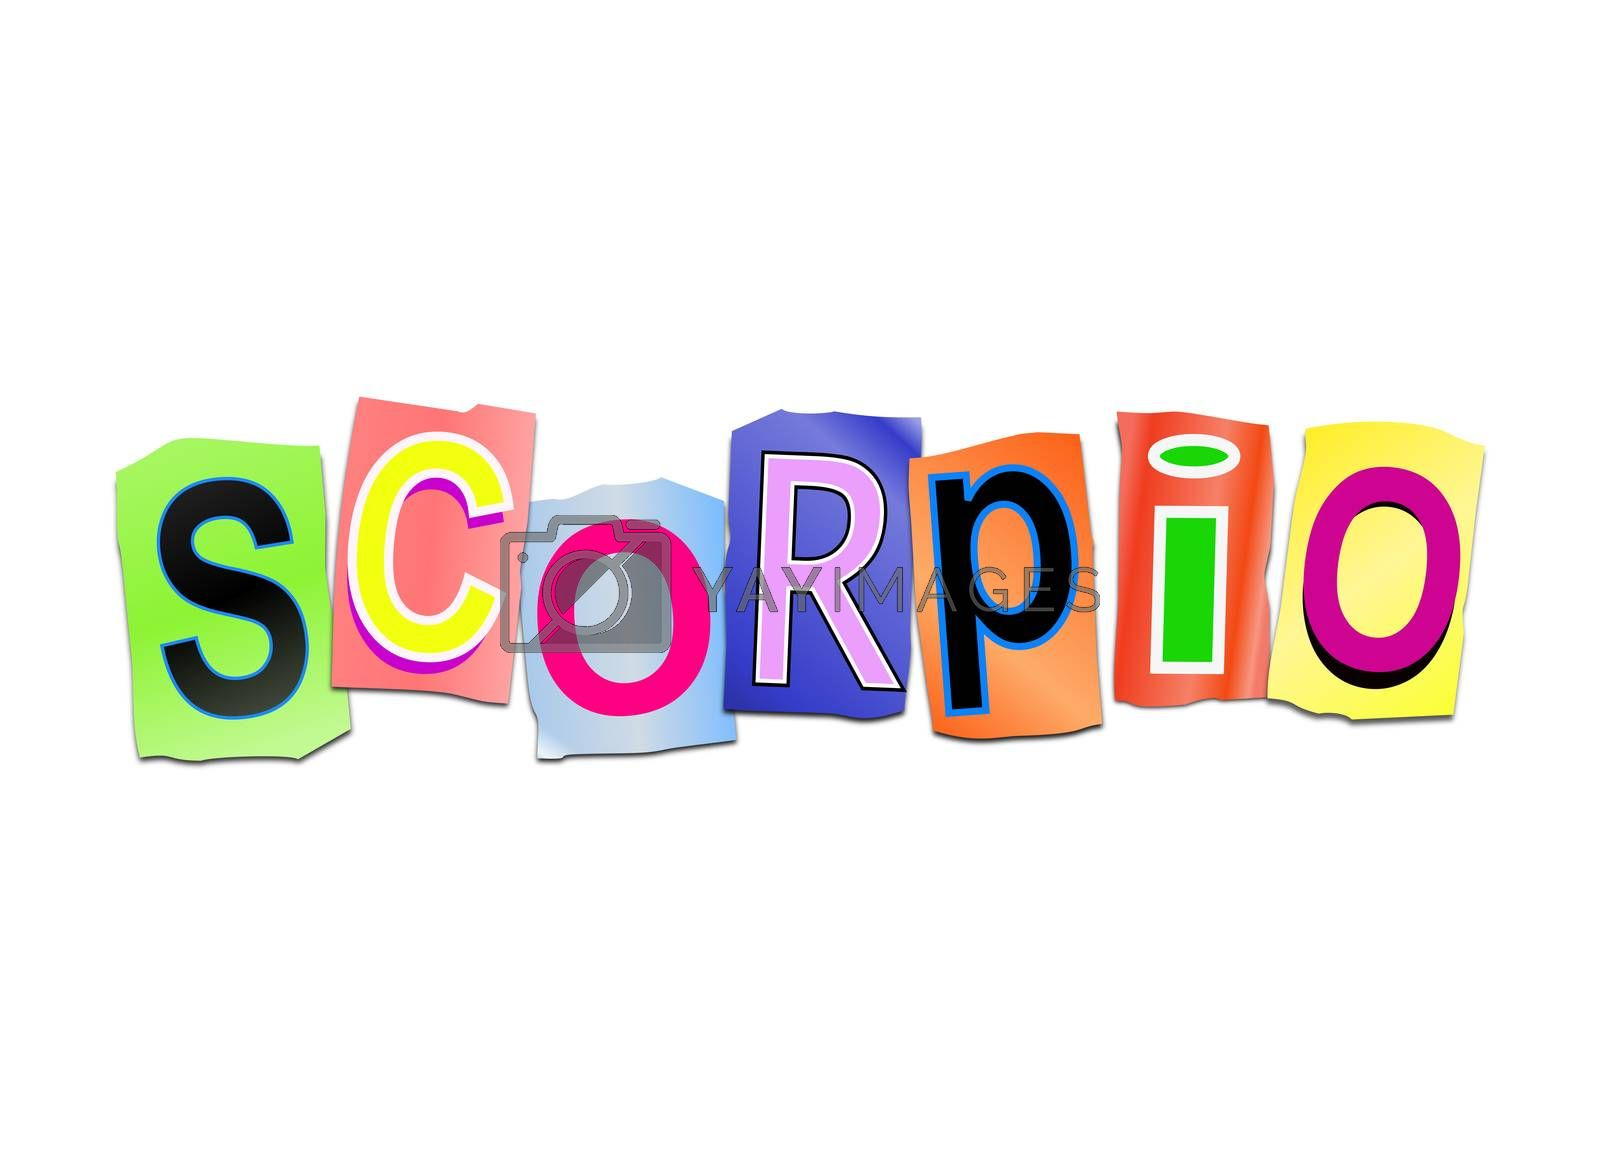 Illustration depicting a set of cut out printed letters arranged to formt the word scorpio.